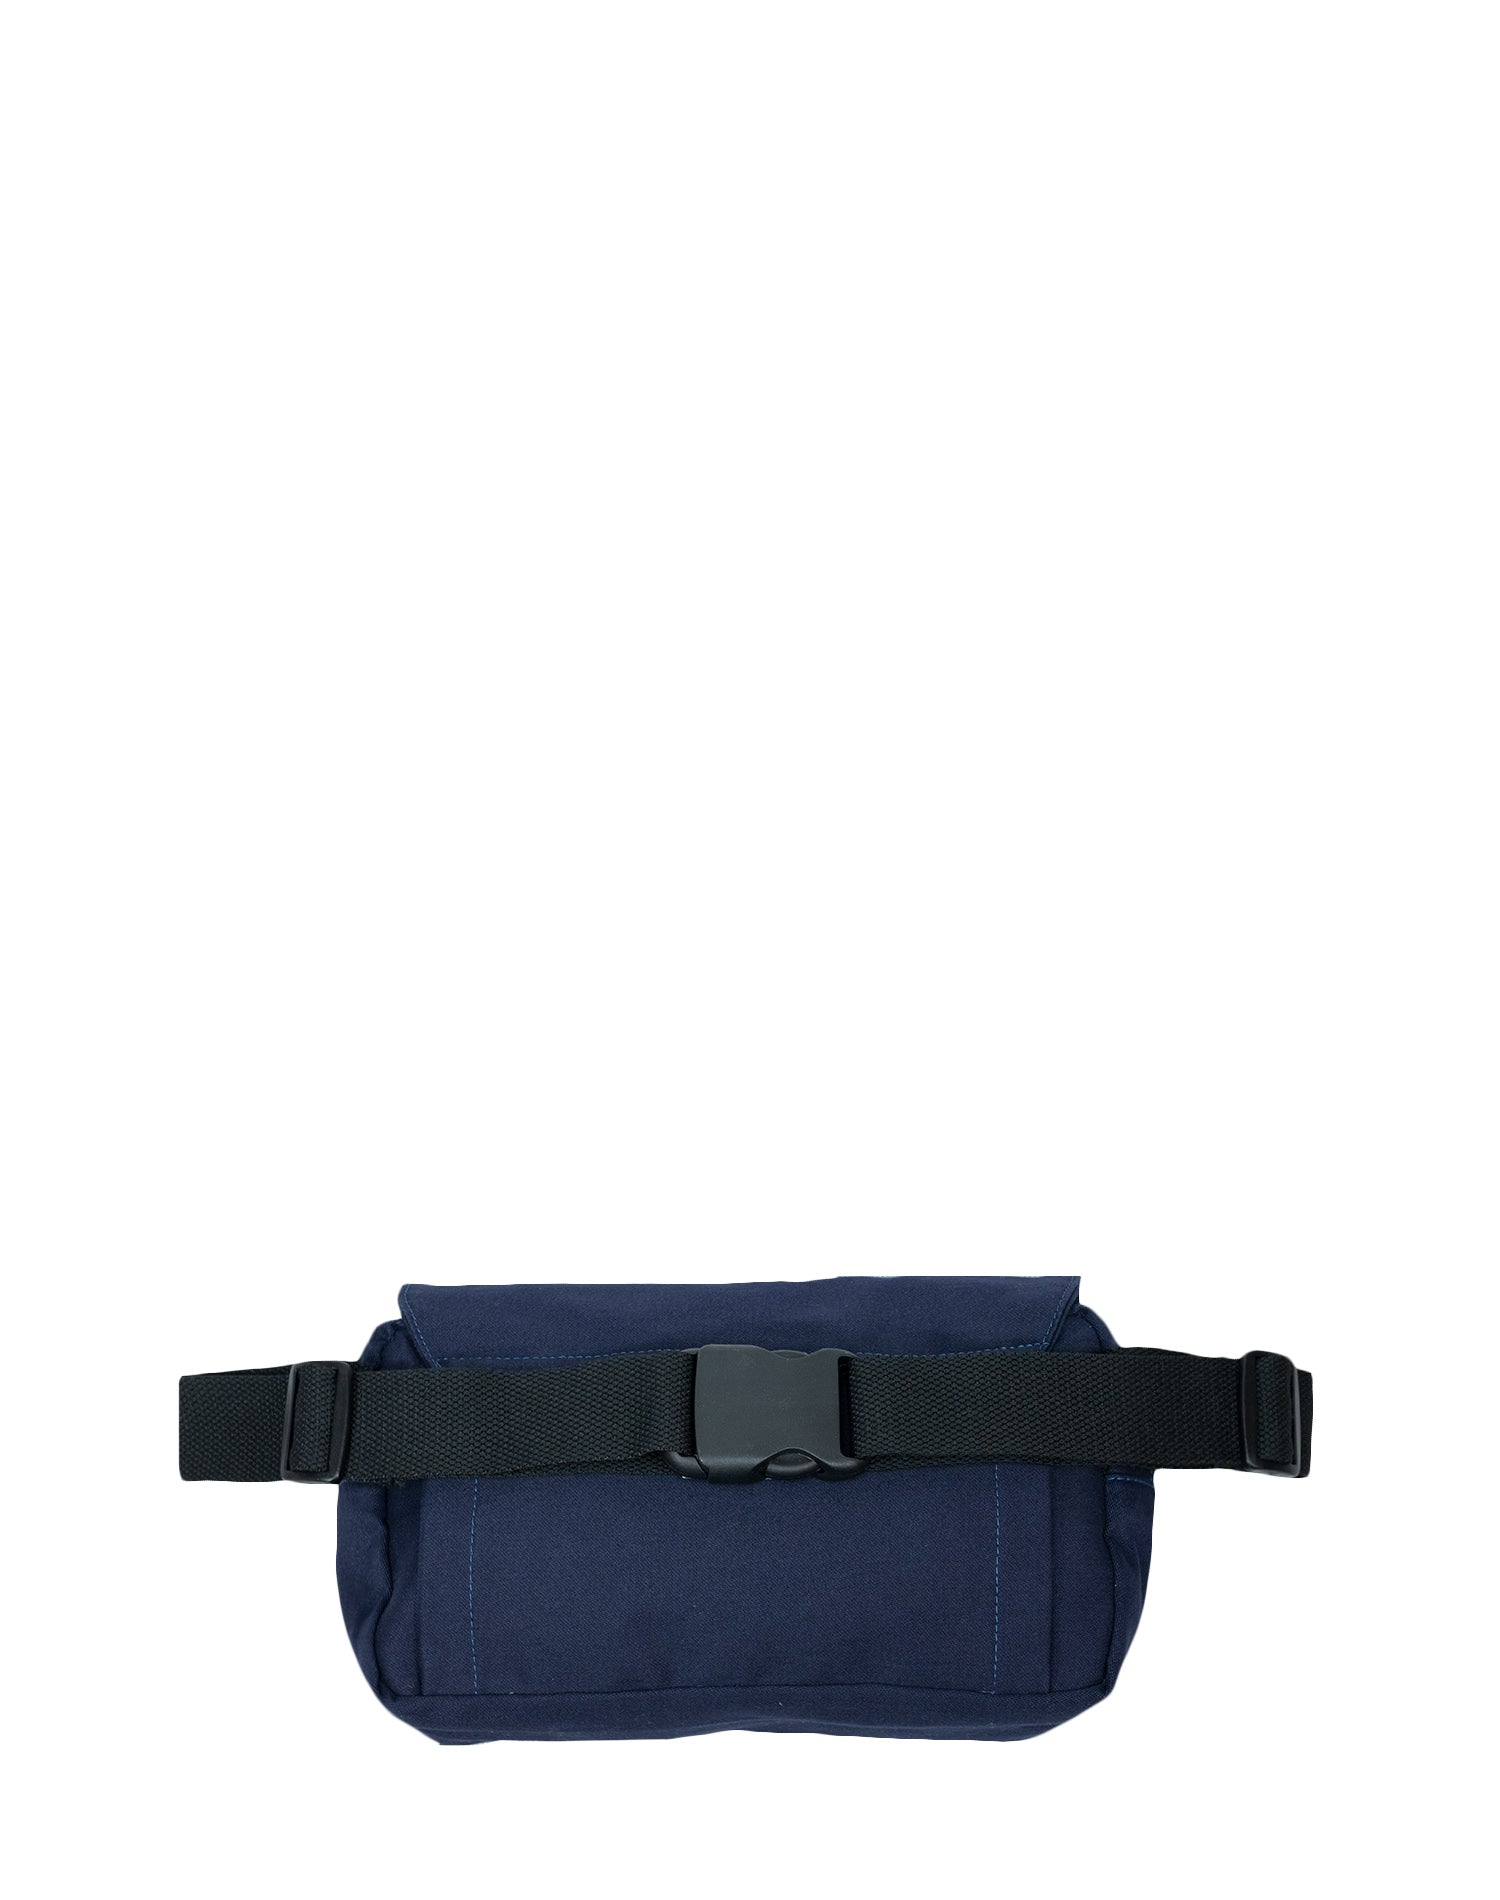 Deep Blue Keeply Belt Sling Bag.深藍色帆布斜揹腰包